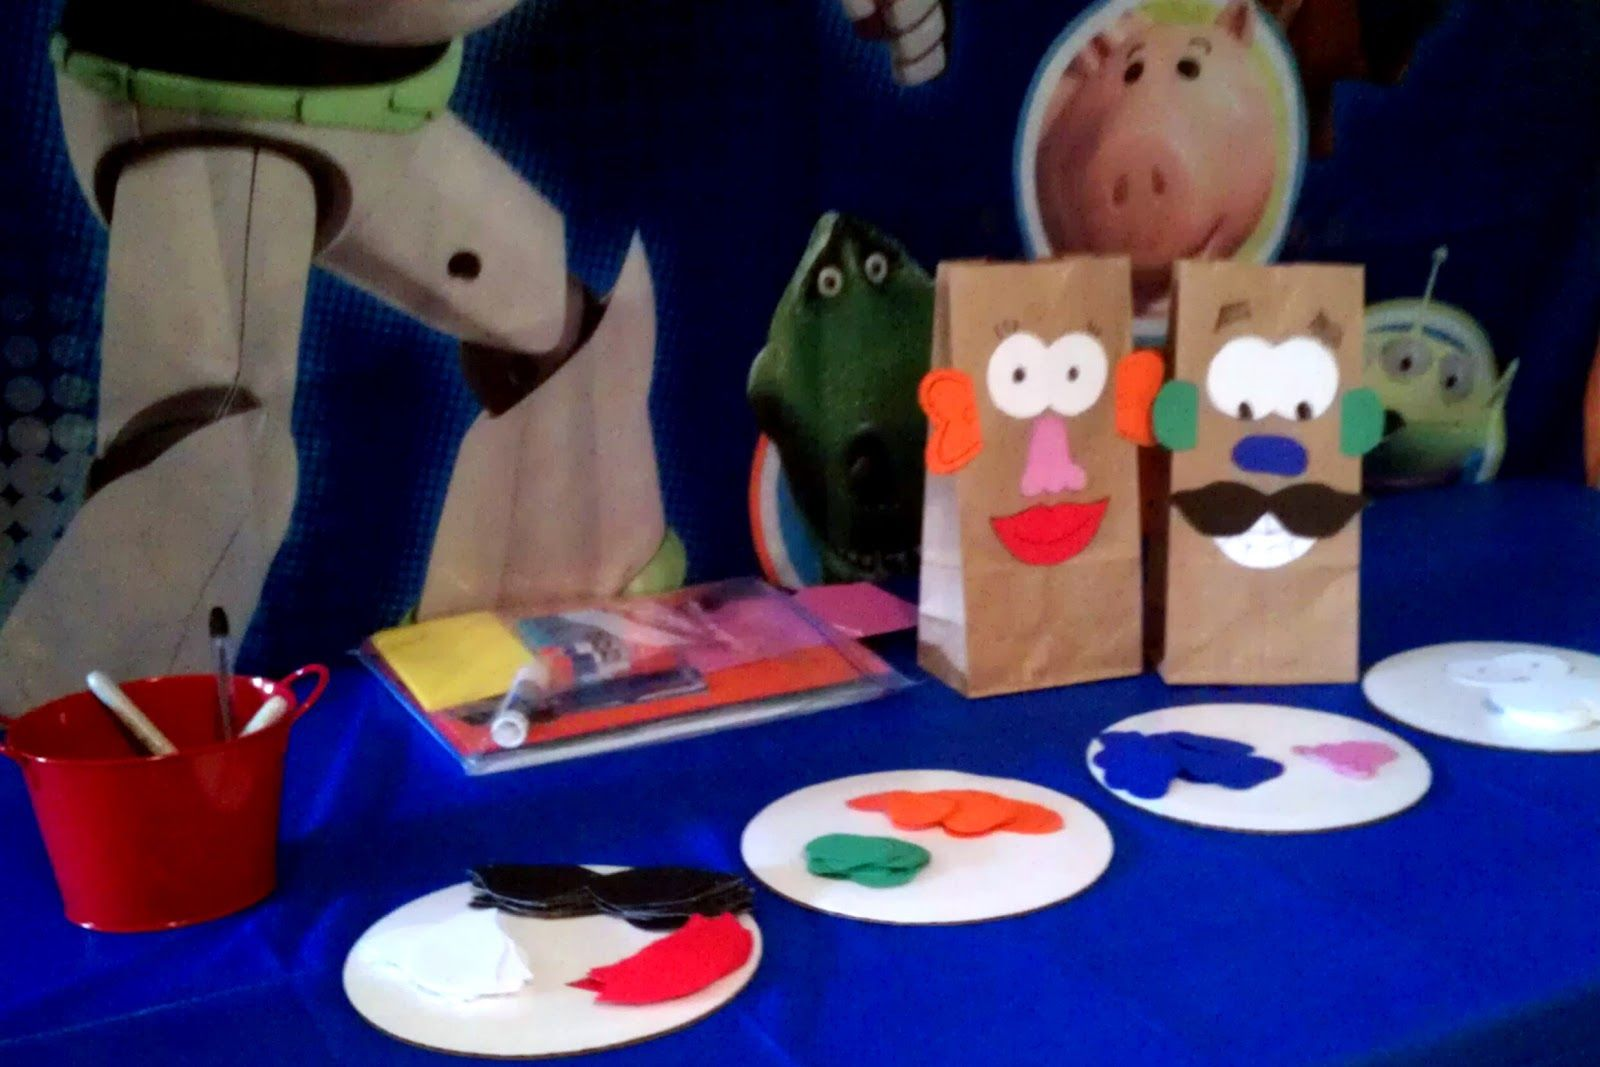 Games To Play At Toy Story Birthday Party : The foley fam unedited toy story birthday party ideas for games